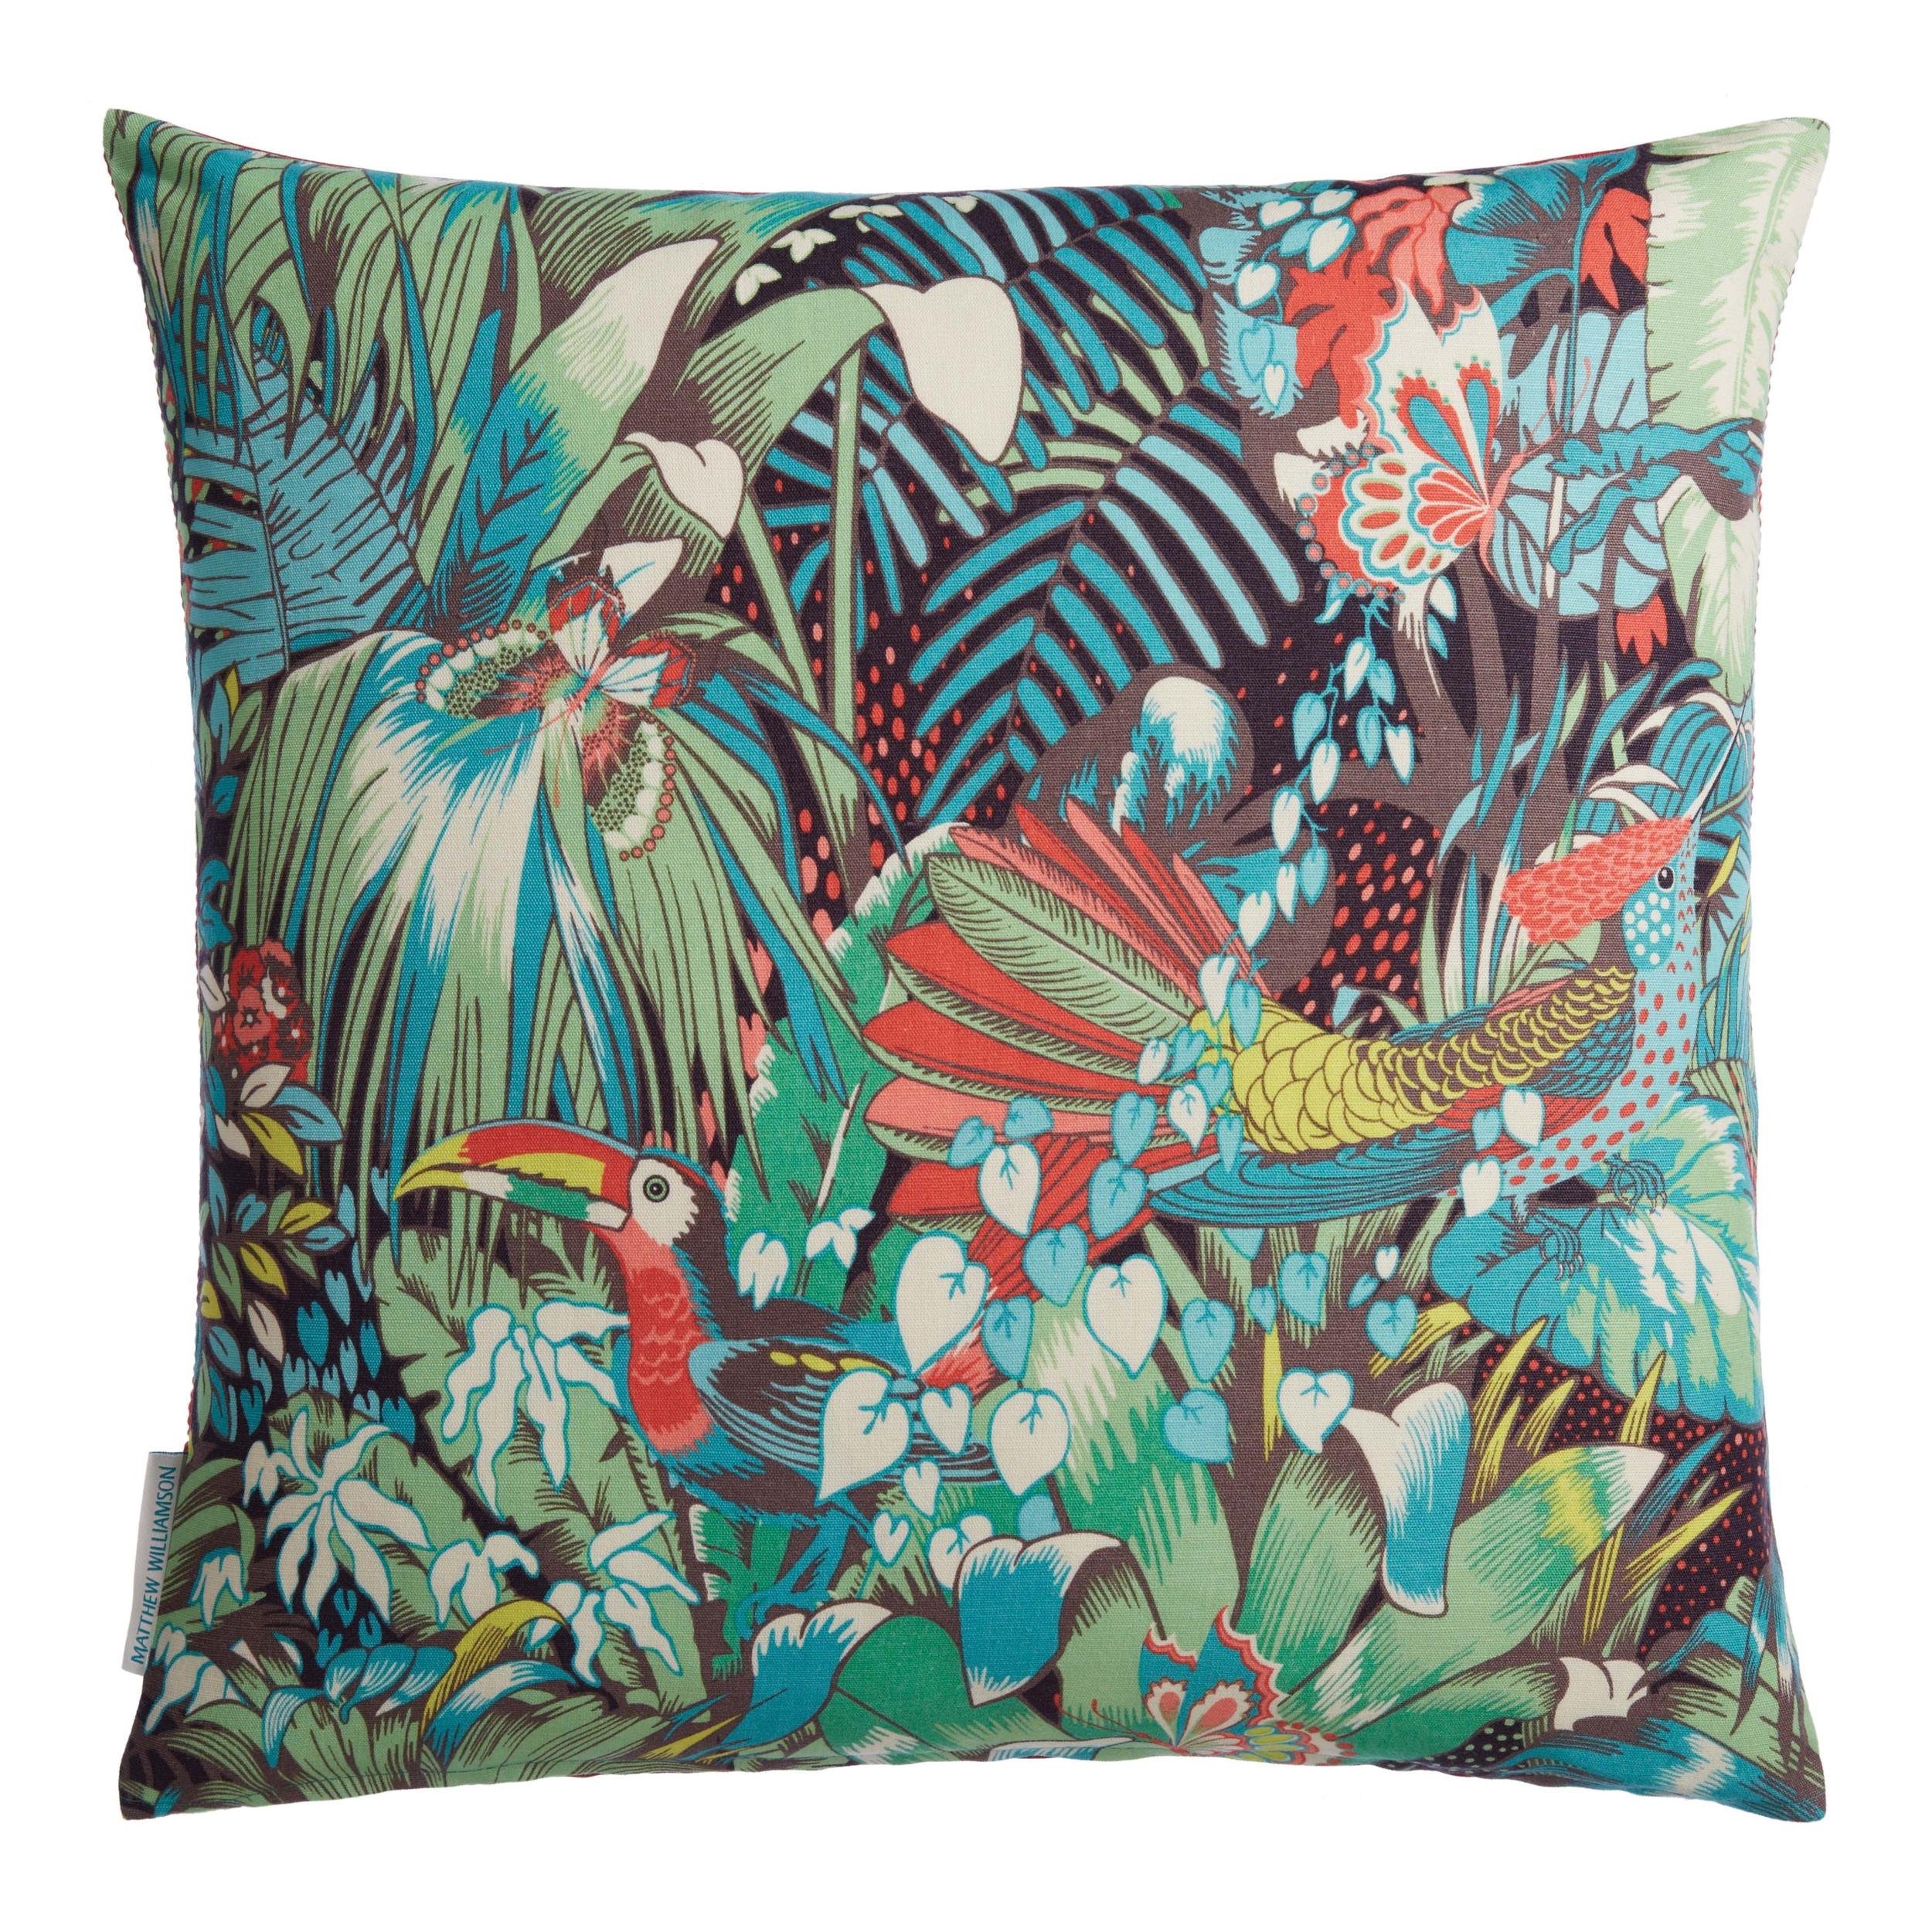 coussin jungle beat green blue 50x50 coussins matthew williamson le boudoir des etoffes. Black Bedroom Furniture Sets. Home Design Ideas